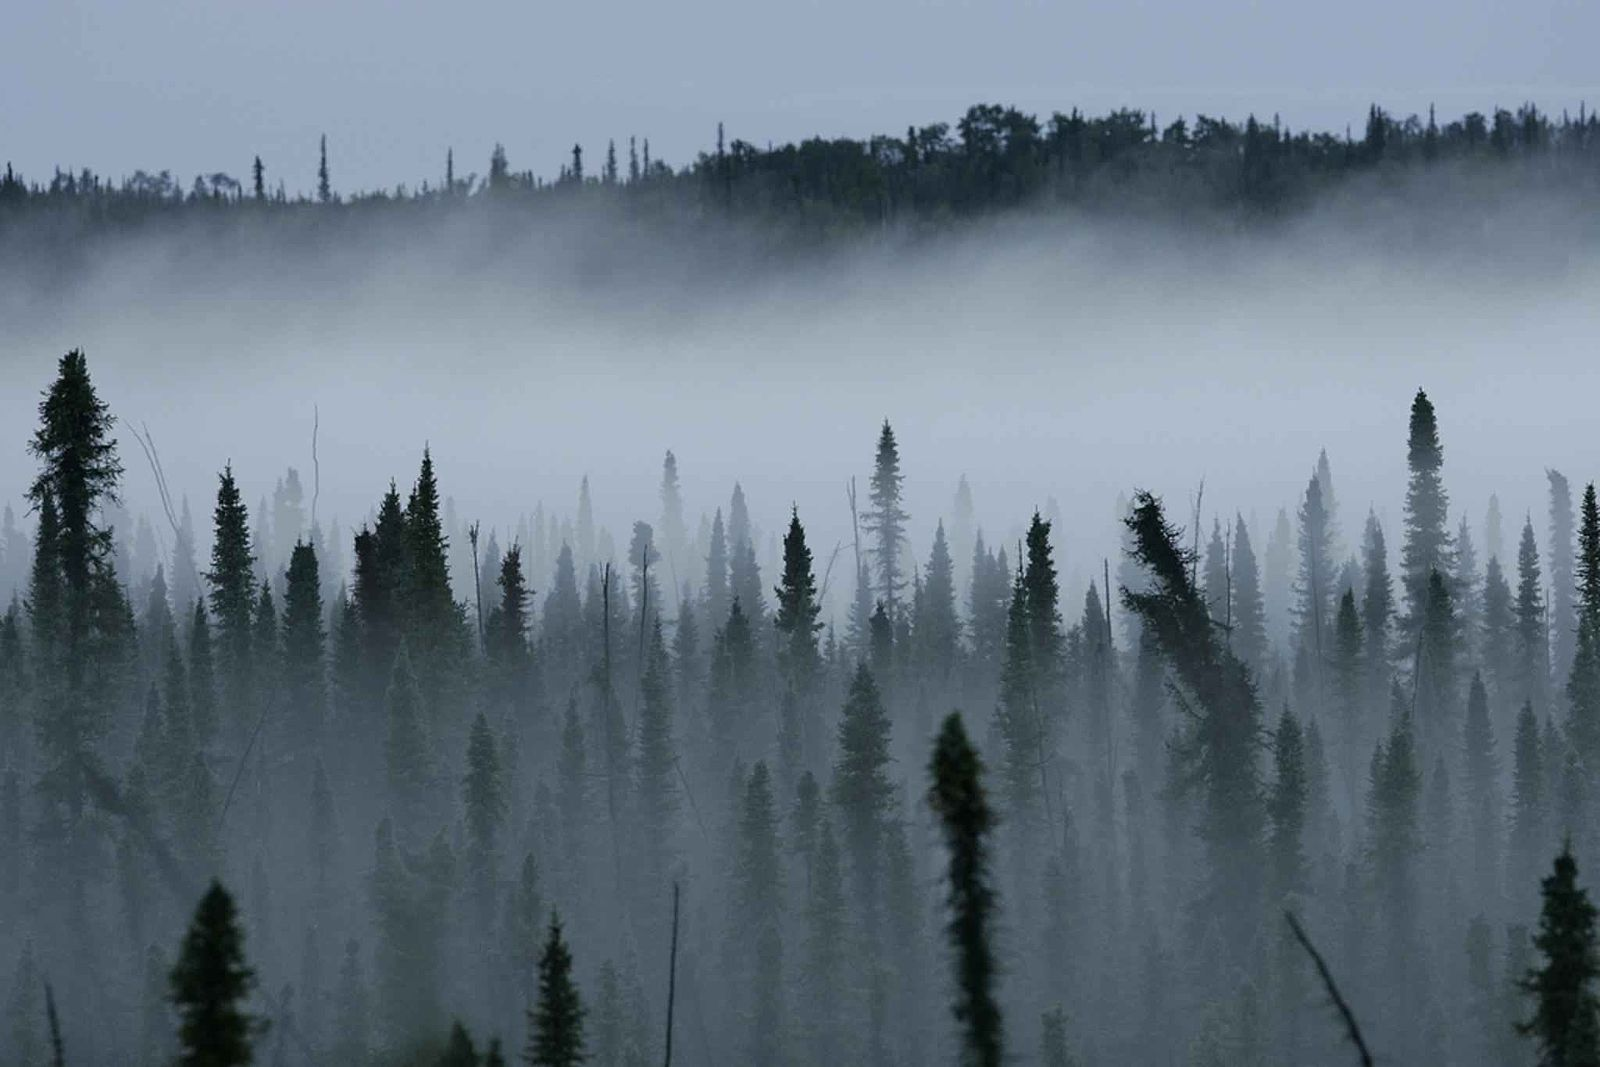 A_mist_rises_from_a_black_spruce_forest wiki commons